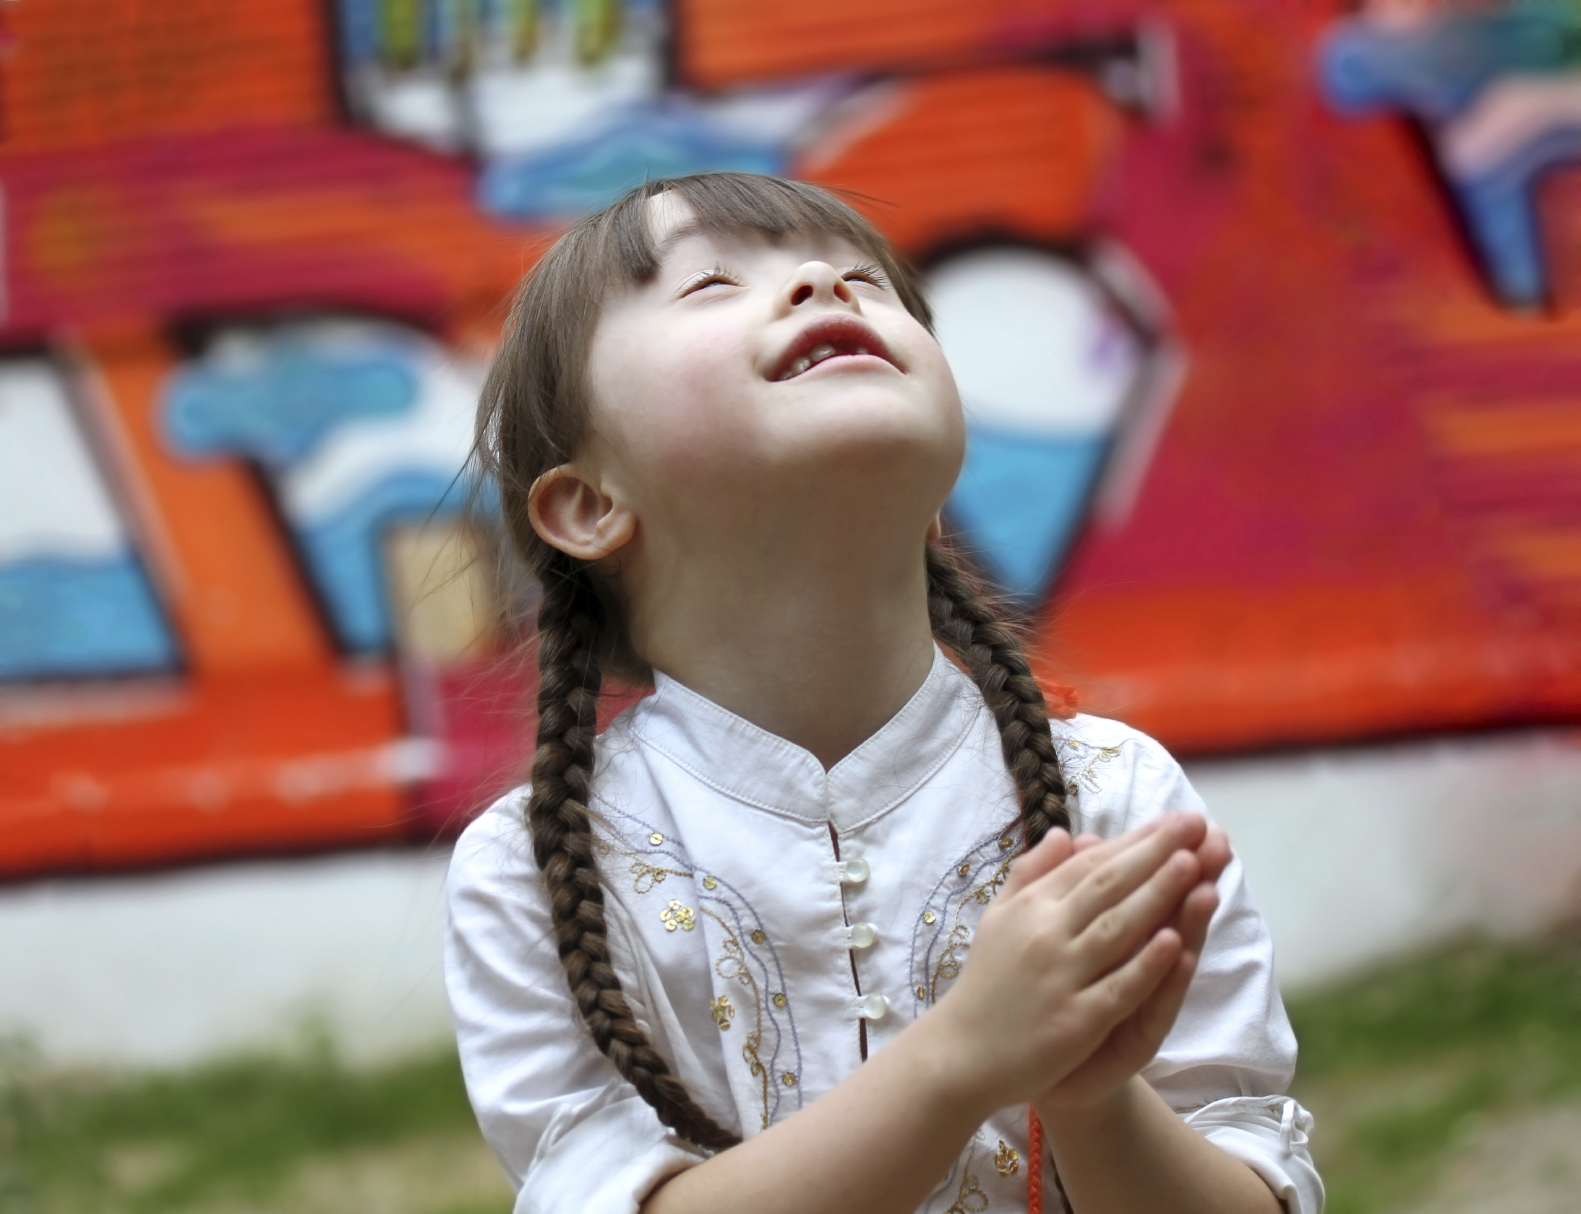 Portrait of beautiful young girl praying on the playground